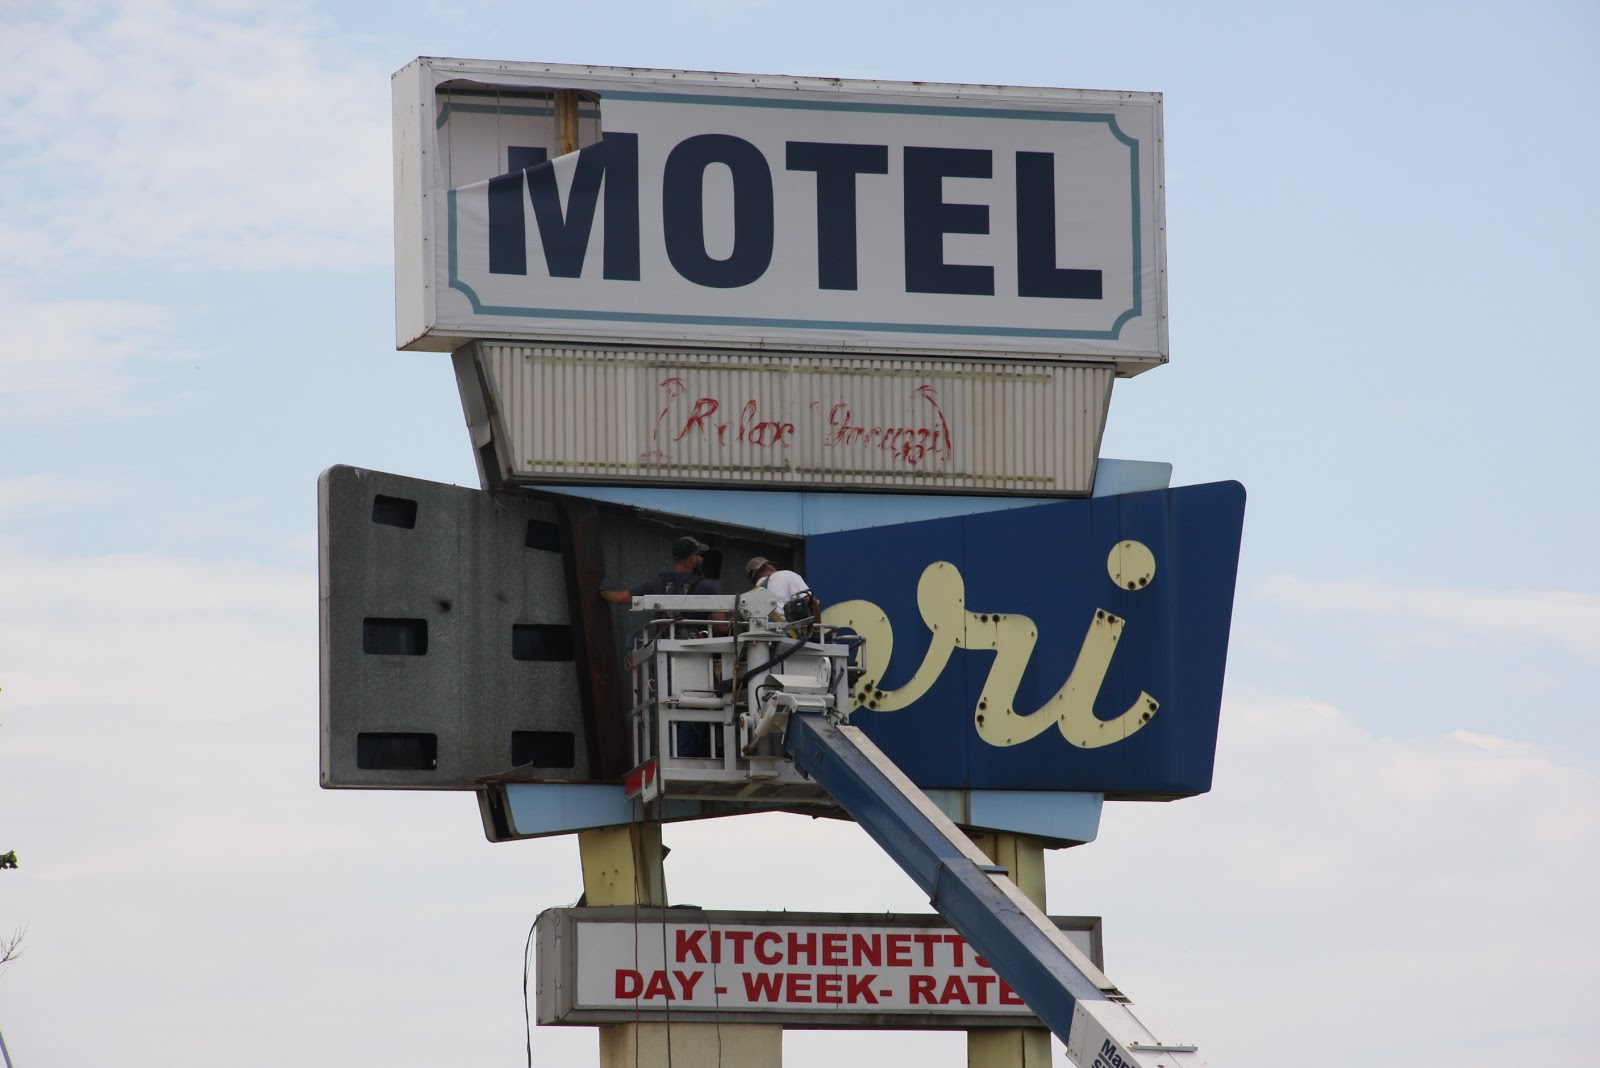 Booking.com: Hotels in Kansas City. Book your hotel now!